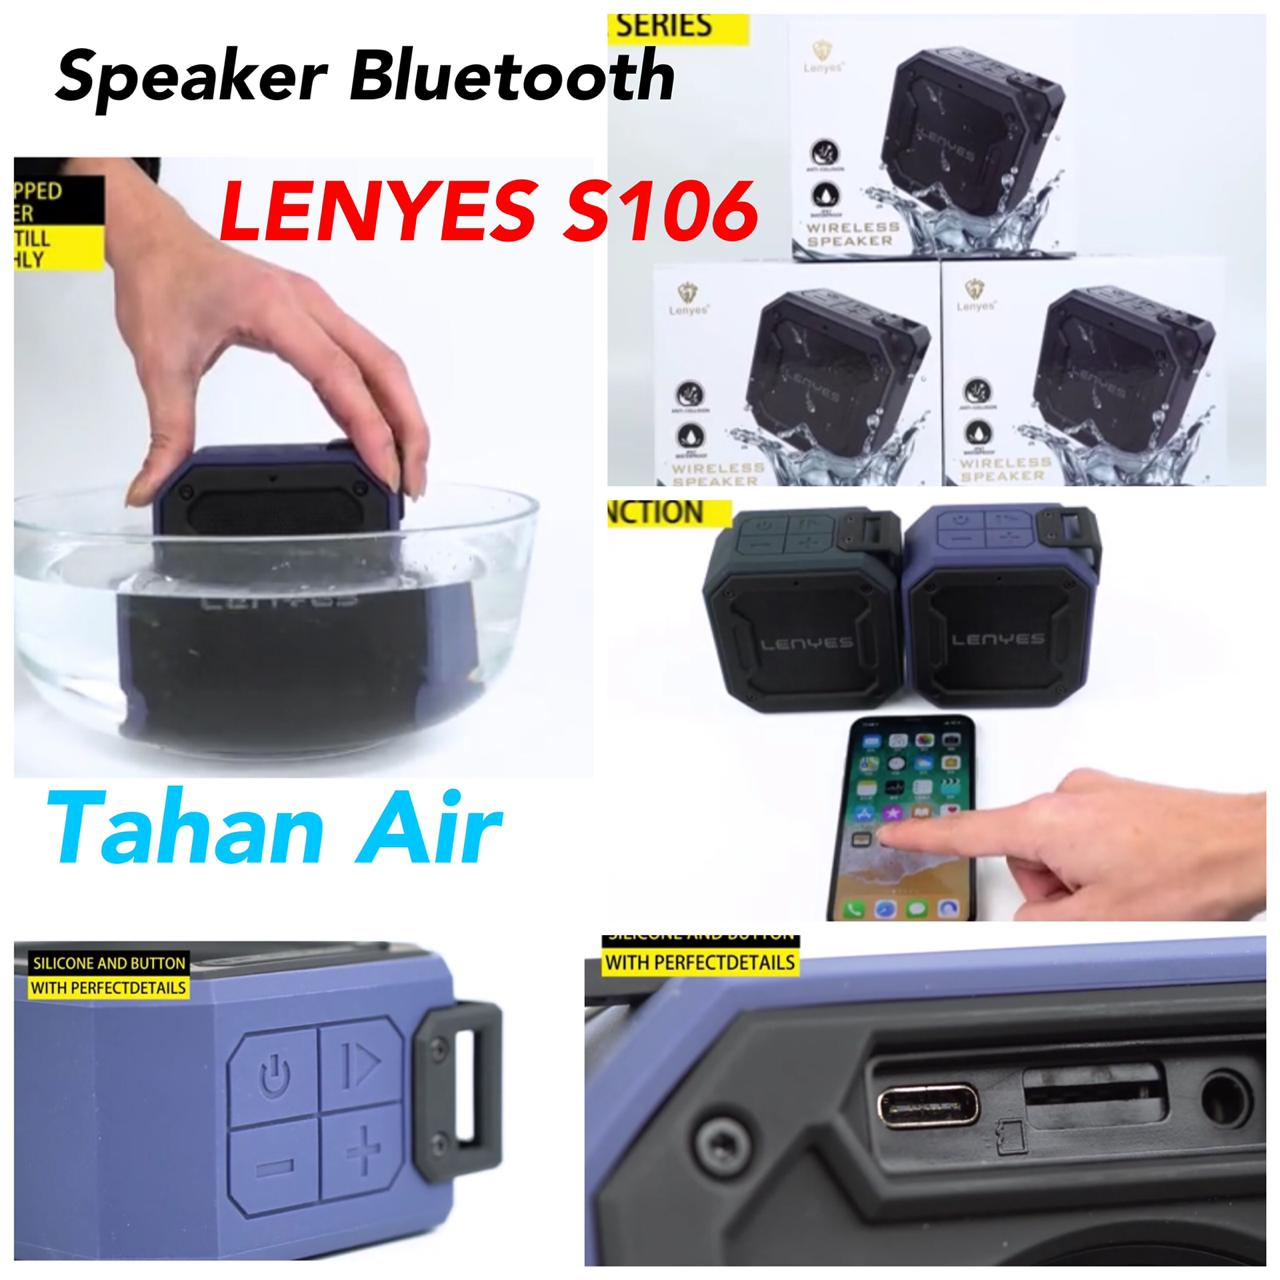 Speaker Bluetooth Tahan Air LENYES S106 Original